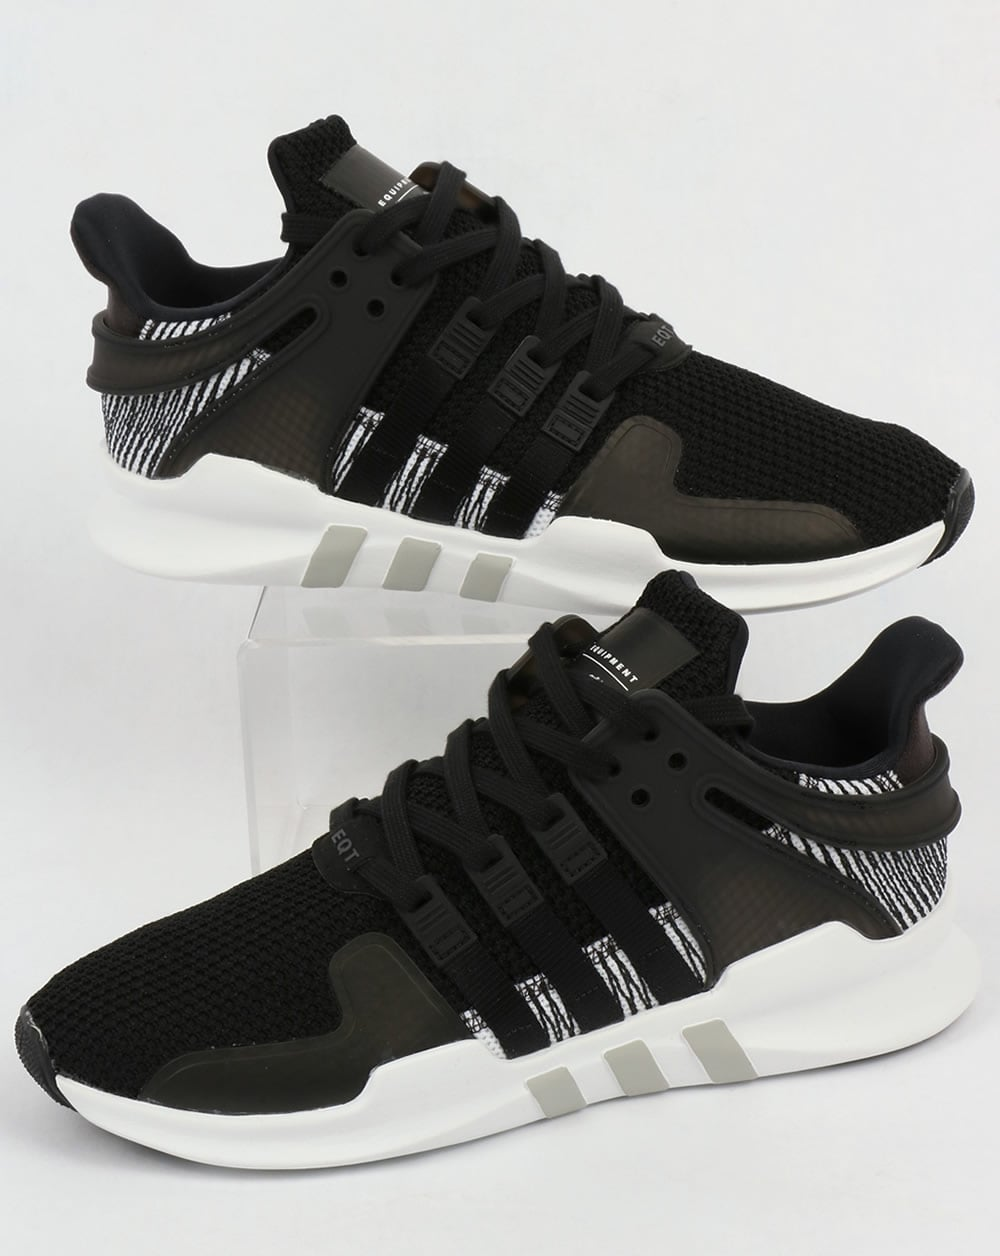 87690095a378 adidas Trainers Adidas EQT Support Adv Trainers Black White